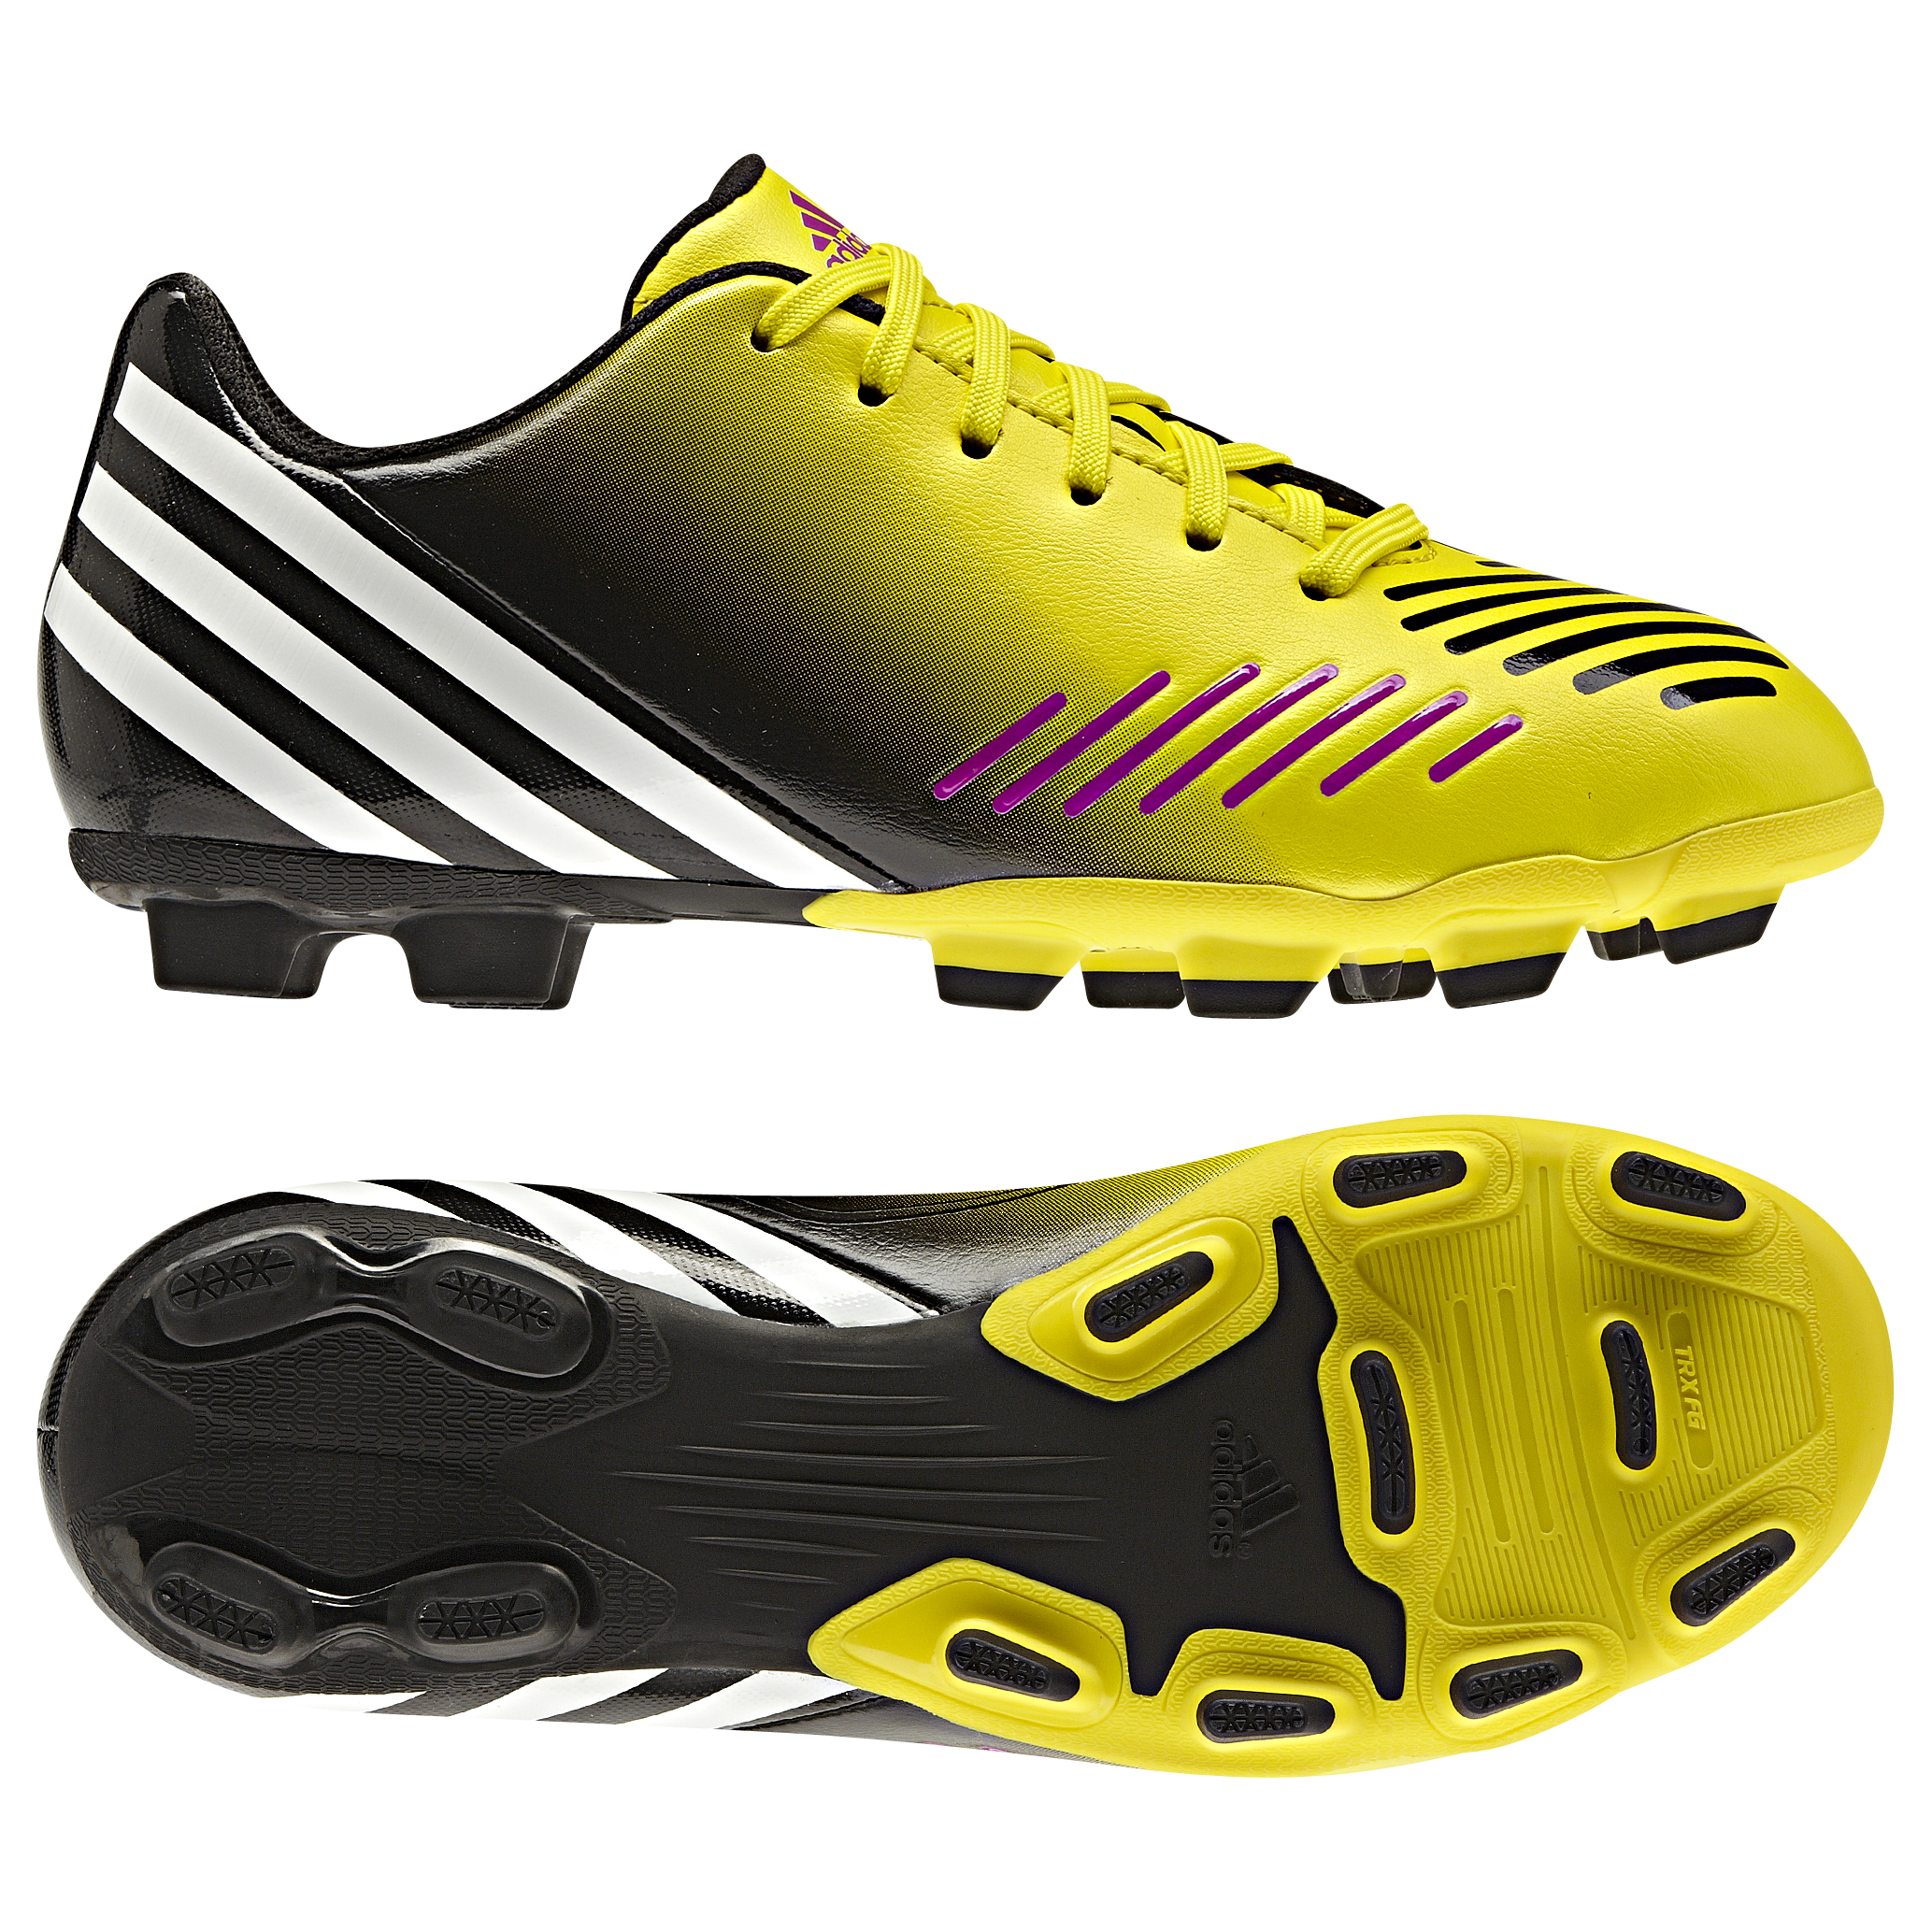 Adidas Predito LZ TRX Firm Ground Football Boots - Vivid Yellow/White/Black - Kids